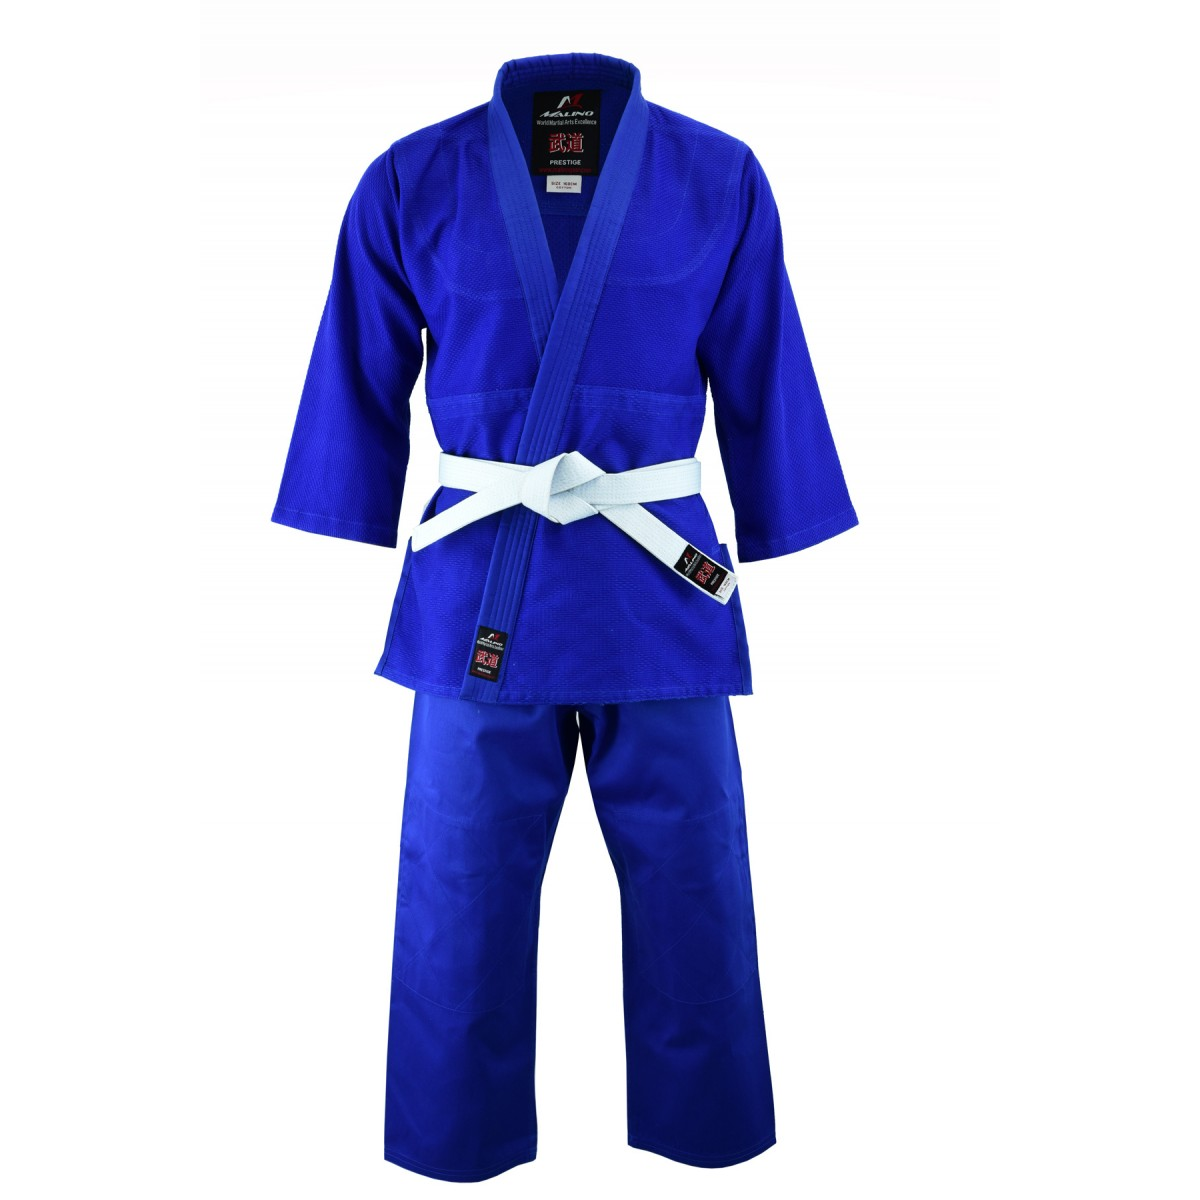 Malino Adult Middleweight Judo Suit Blue - 450g